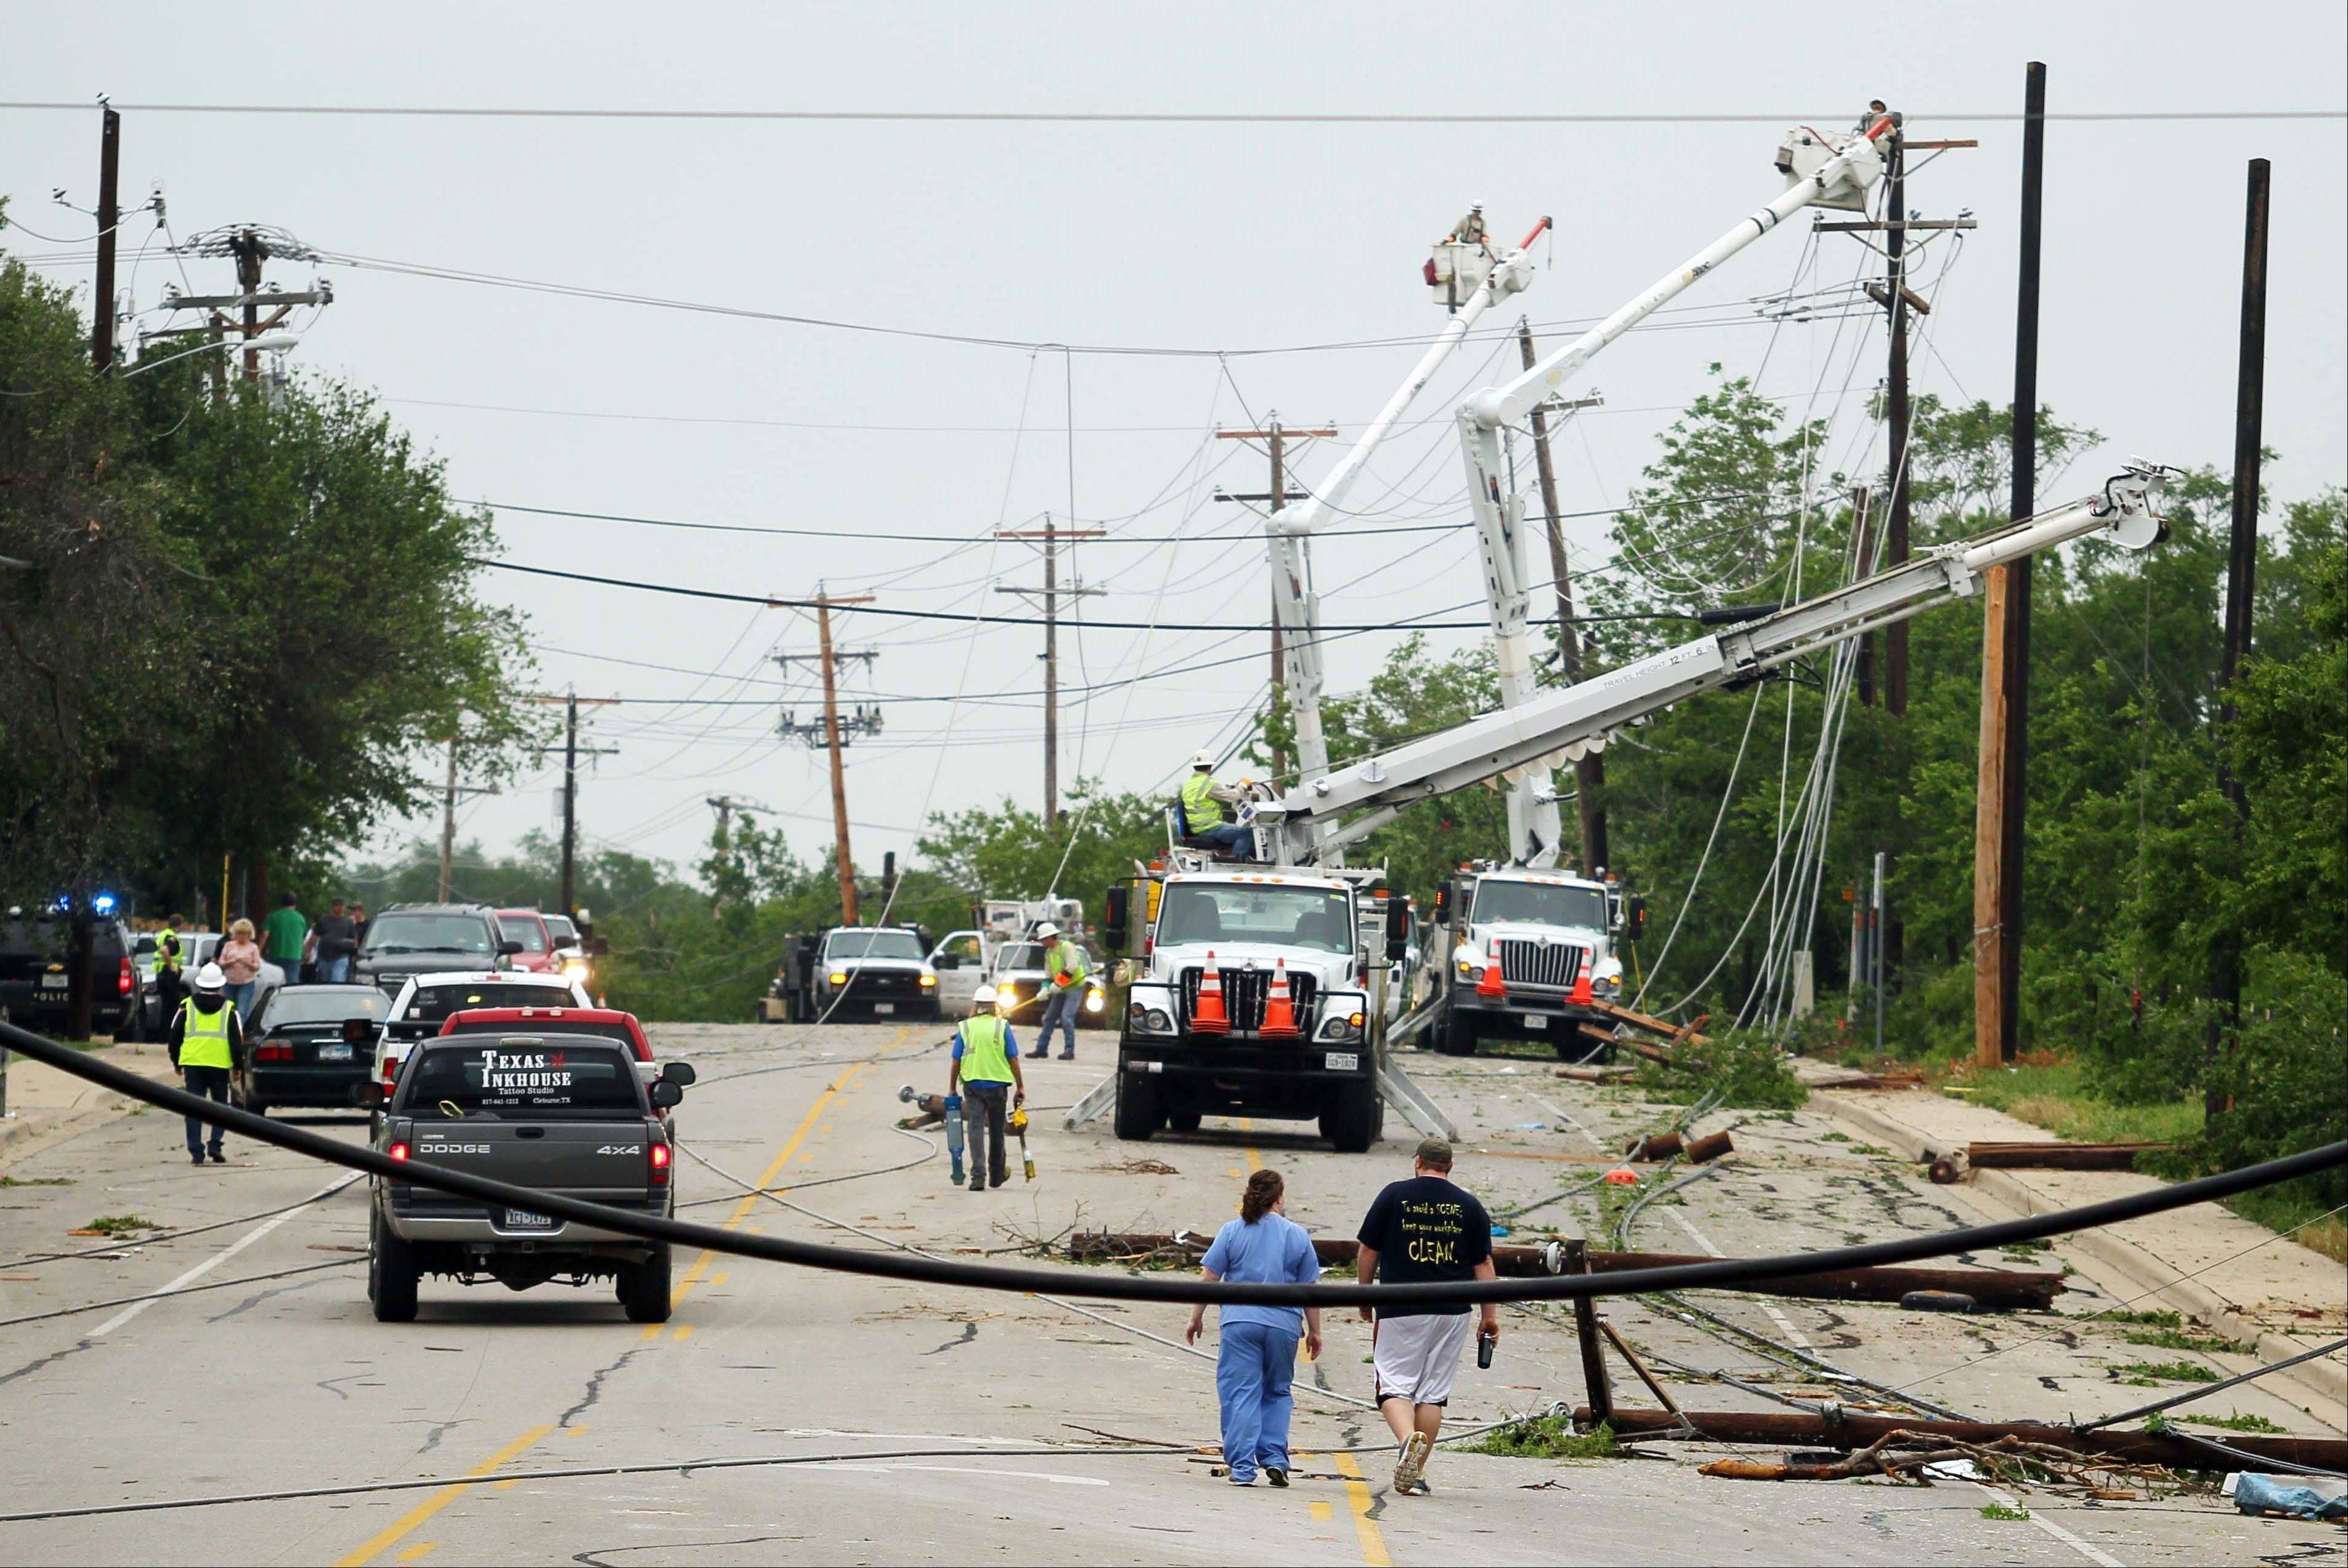 Crews work to clear power lines damaged by Wednesday's tornado in Cleburne, Texas on Thursday, May 16, 2013. Ten tornadoes touched down in several small communities in Texas overnight, leaving at least six people dead, dozens injured and hundreds homeless. Emergency responders were still searching for missing people Thursday afternoon.